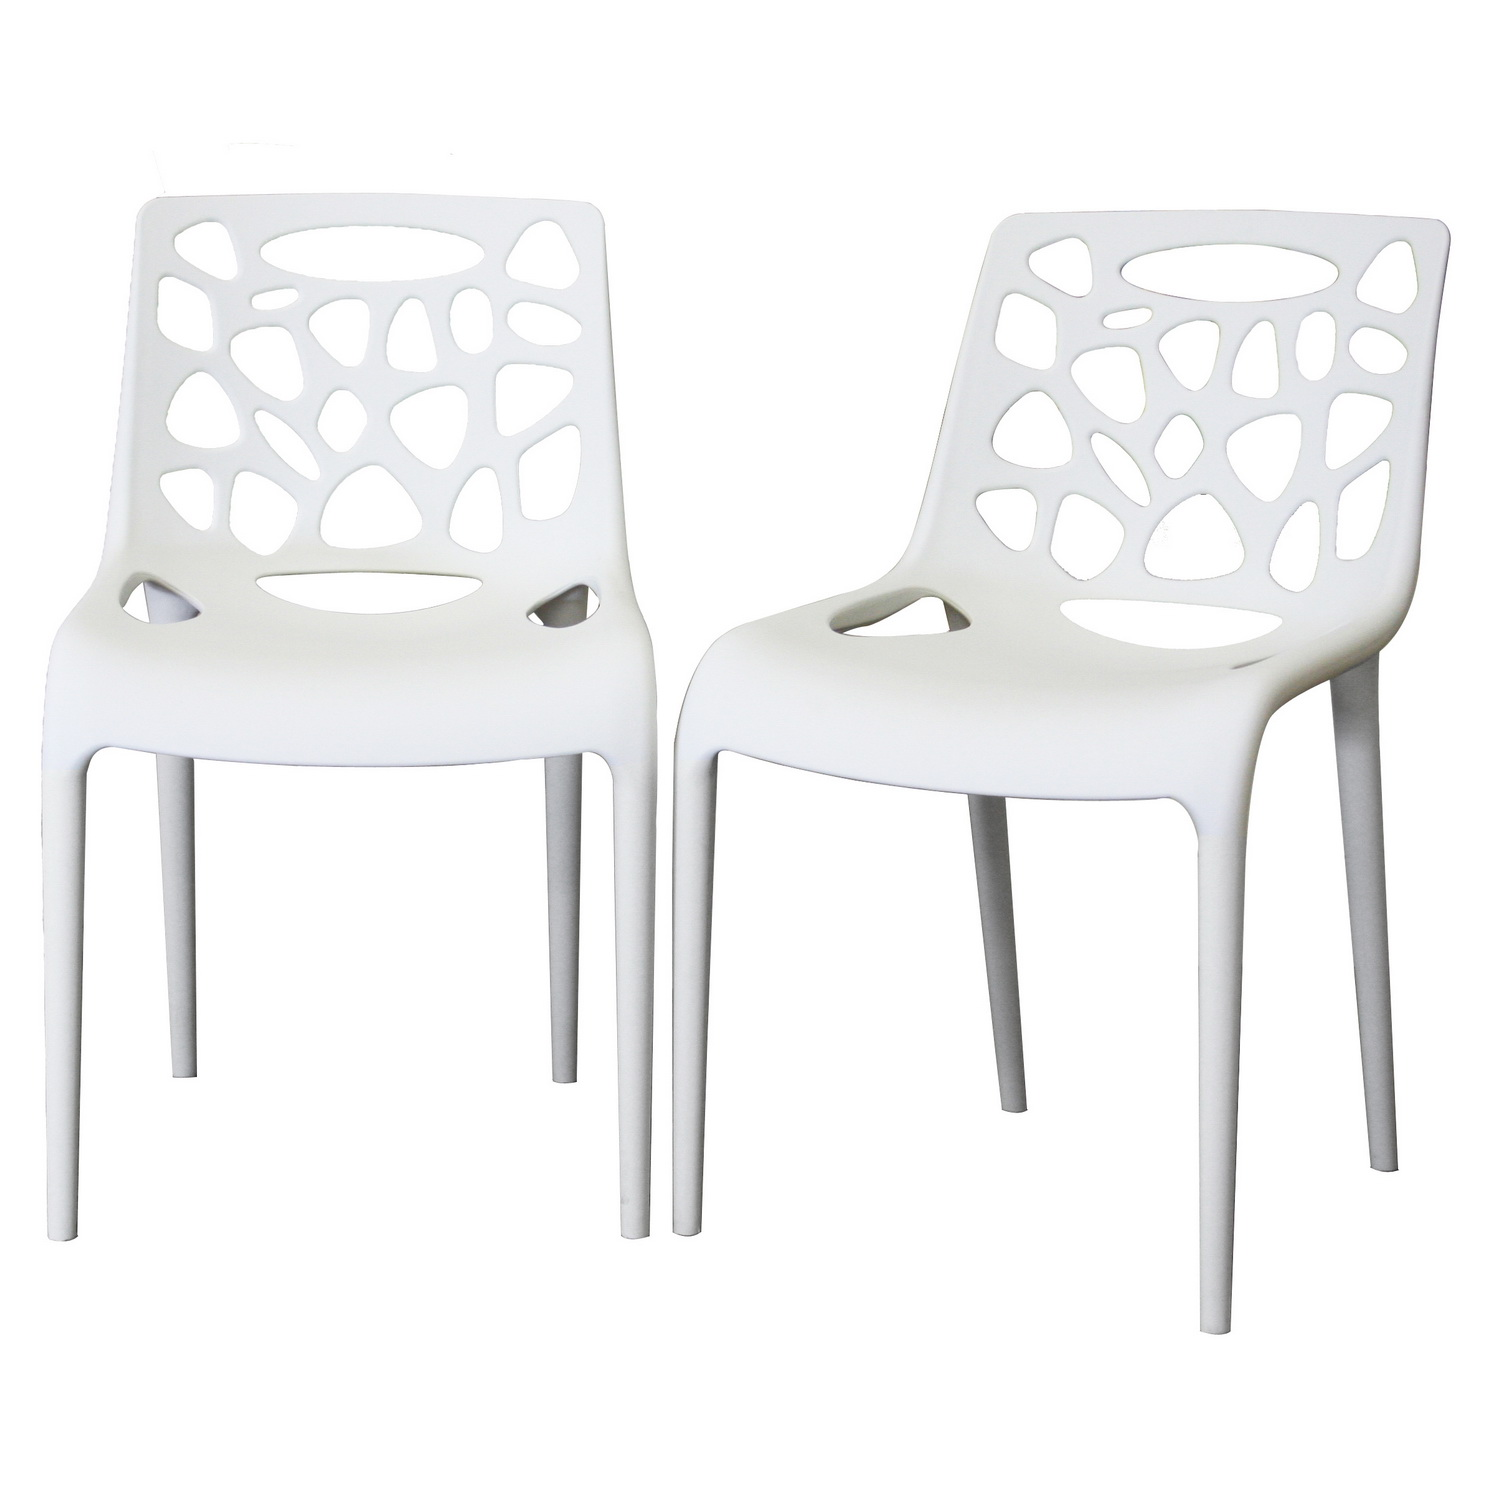 White Modern Dining Chair Chair Pads Amp Cushions